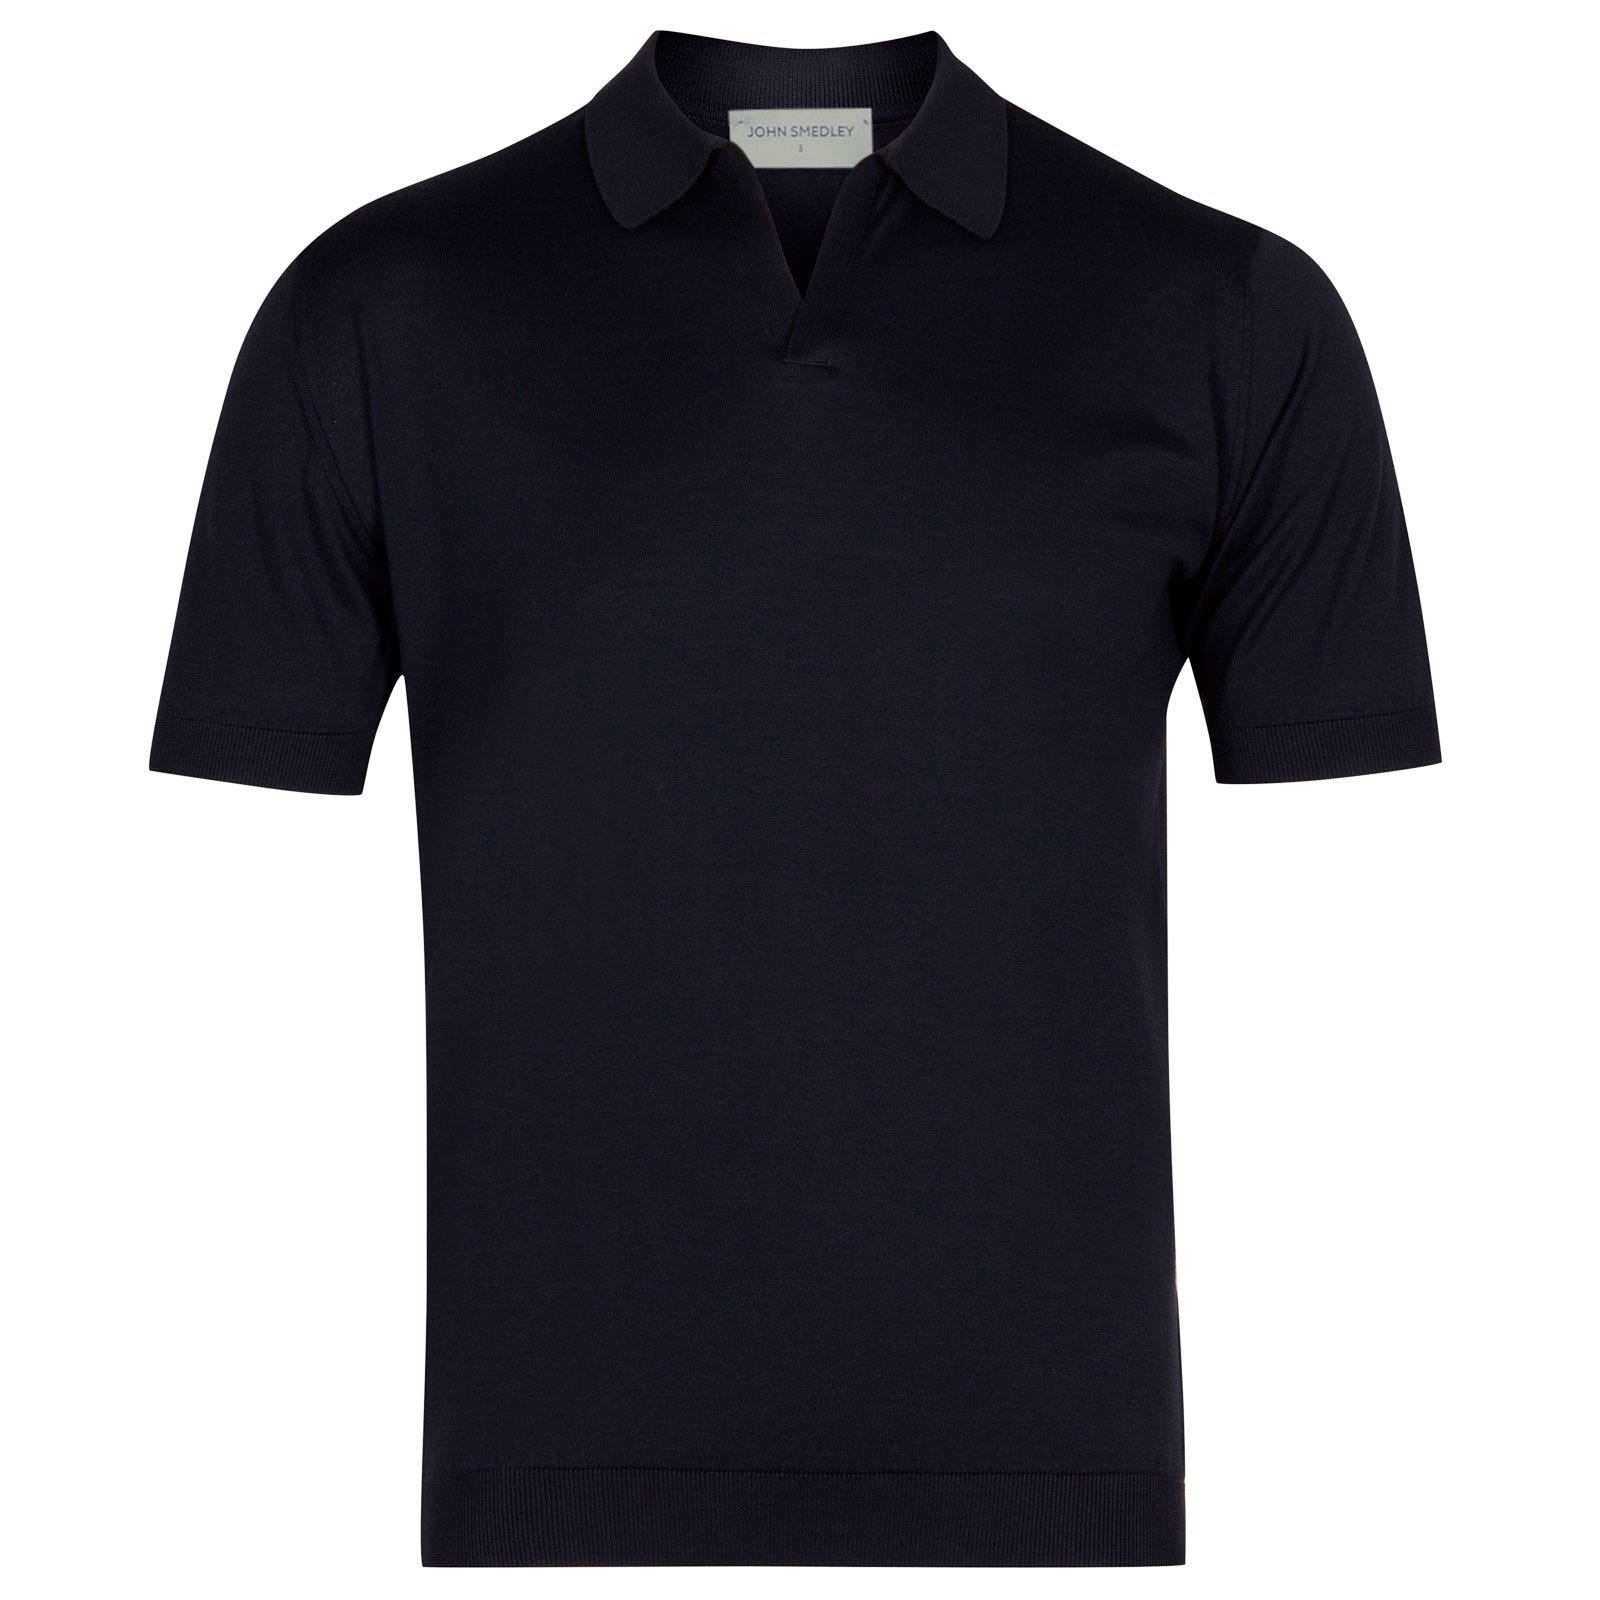 John Smedley Noah Sea Island Cotton Shirt in Navy-S